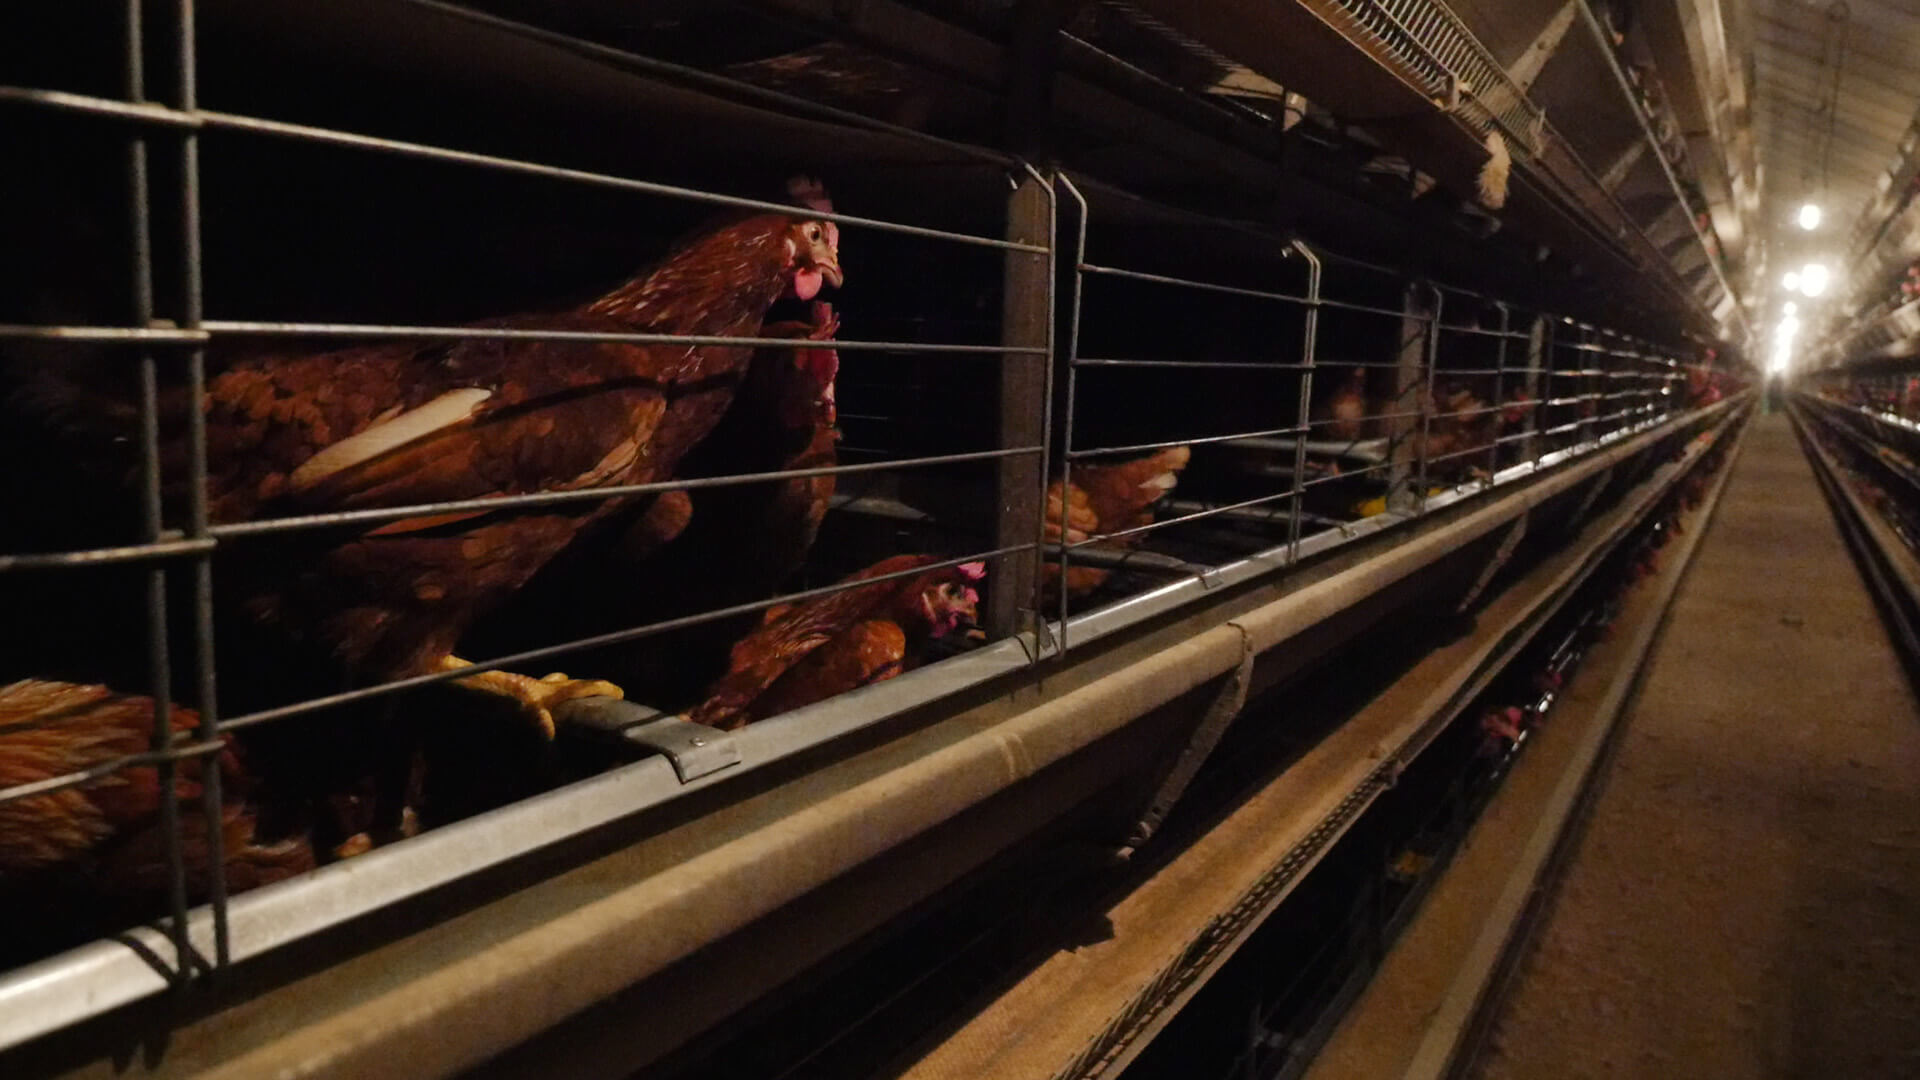 egg laying hens in enriched cages